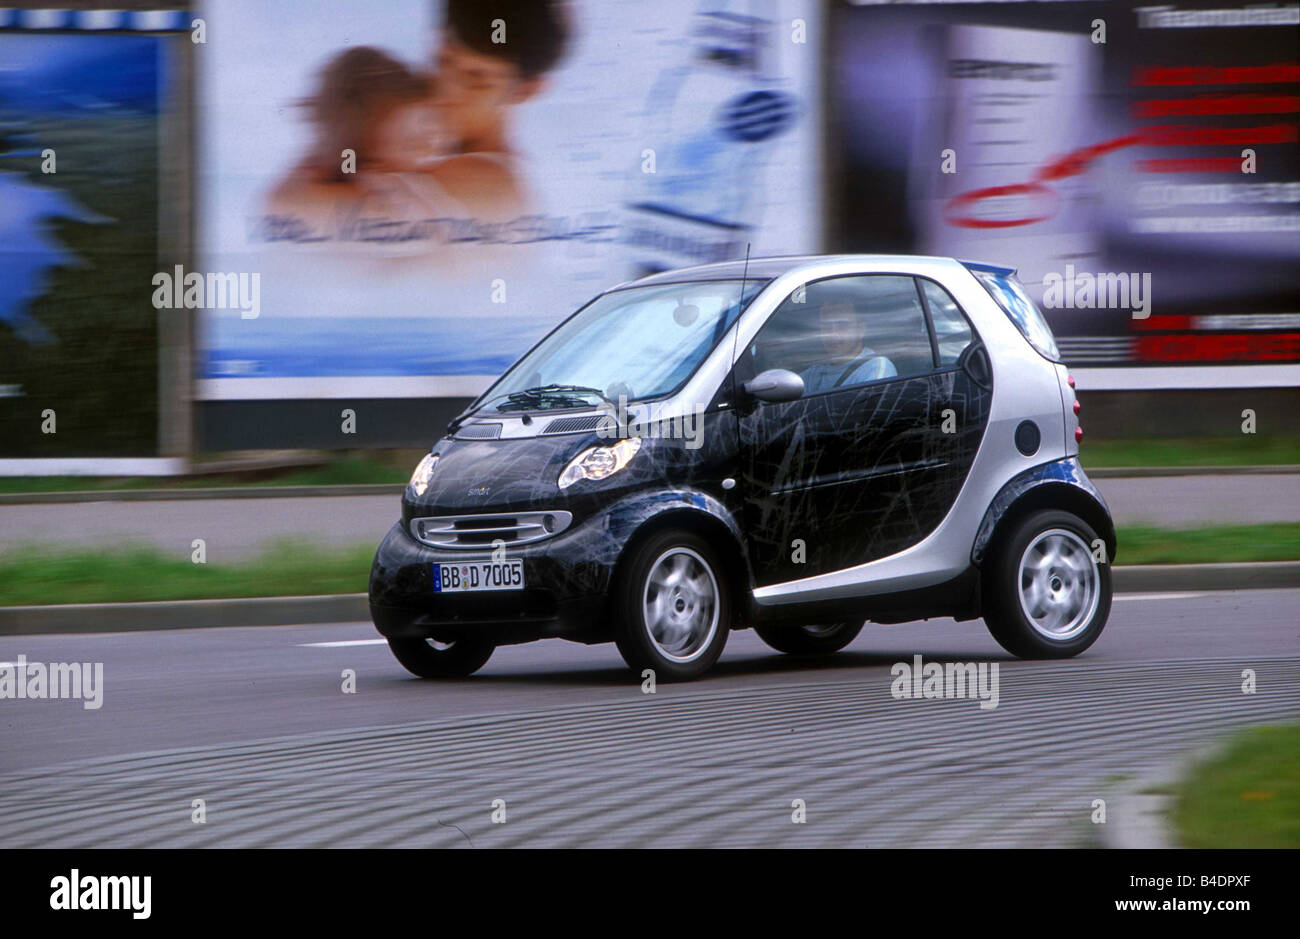 car mercedes smart coupe mini cars model year 2002 stock photo 19972359 alamy. Black Bedroom Furniture Sets. Home Design Ideas